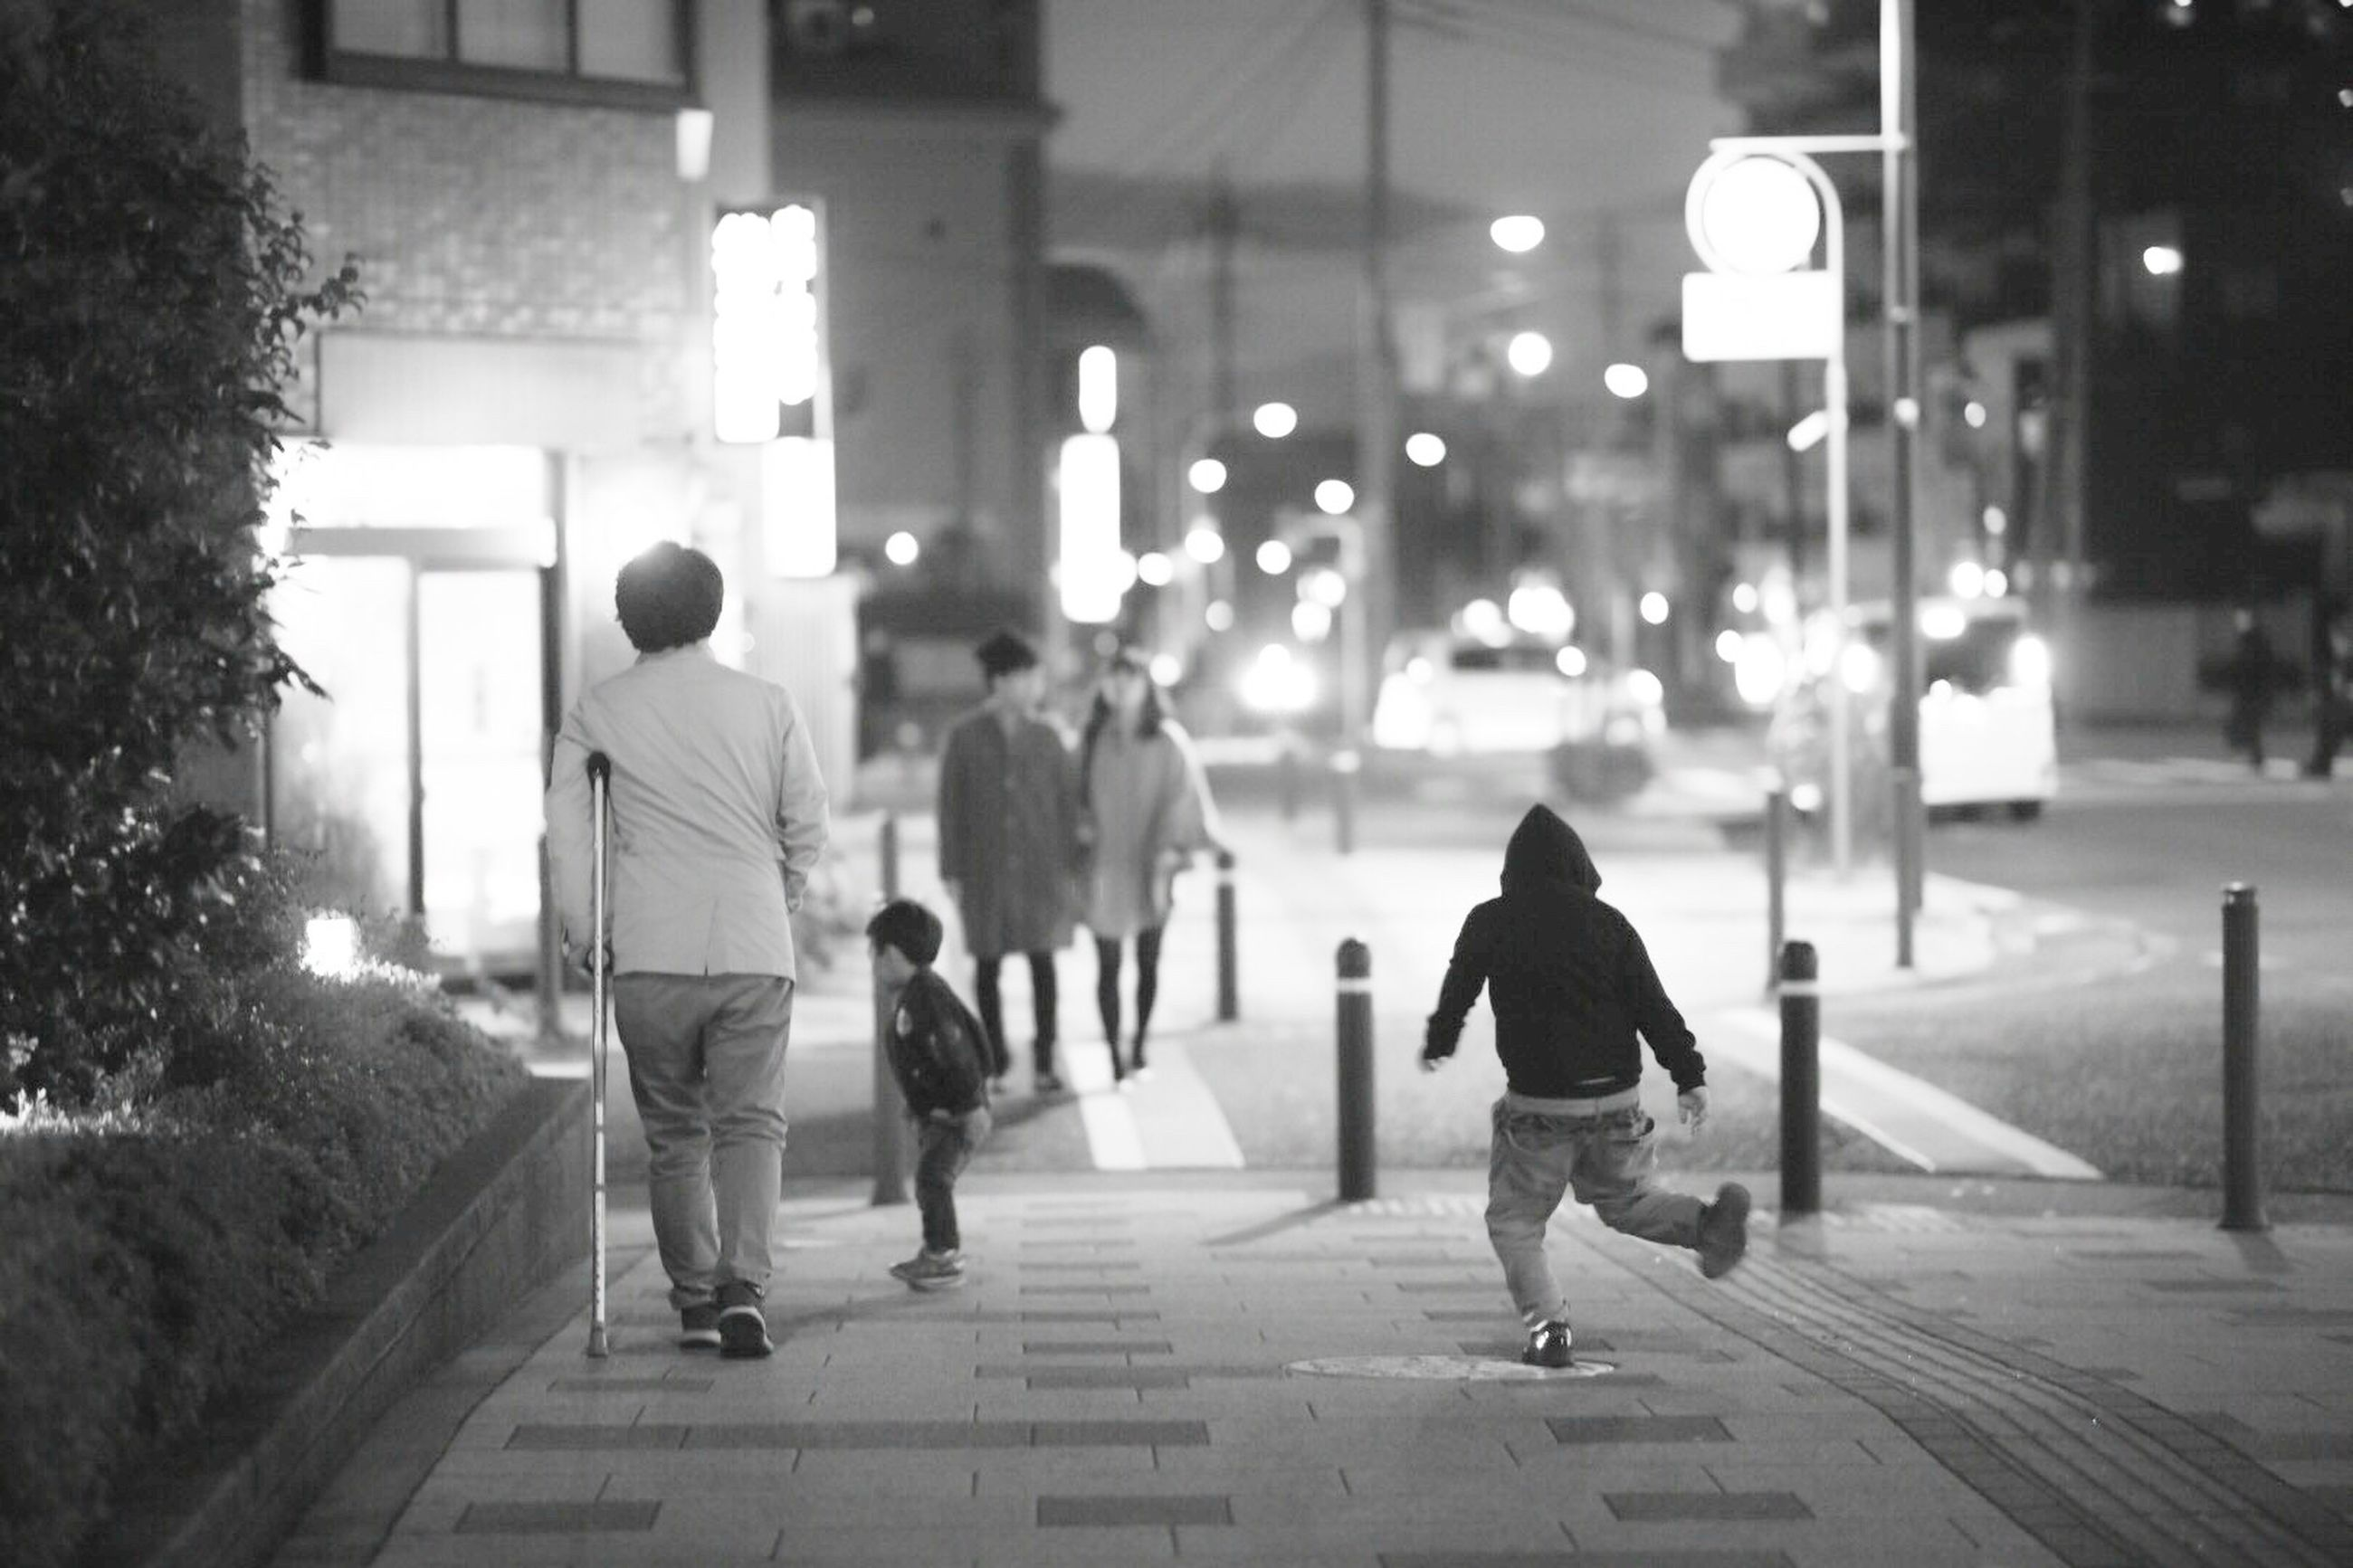 walking, real people, rear view, full length, focus on foreground, street, illuminated, lifestyles, outdoors, city life, night, leisure activity, women, men, togetherness, built structure, city, building exterior, warm clothing, adult, people